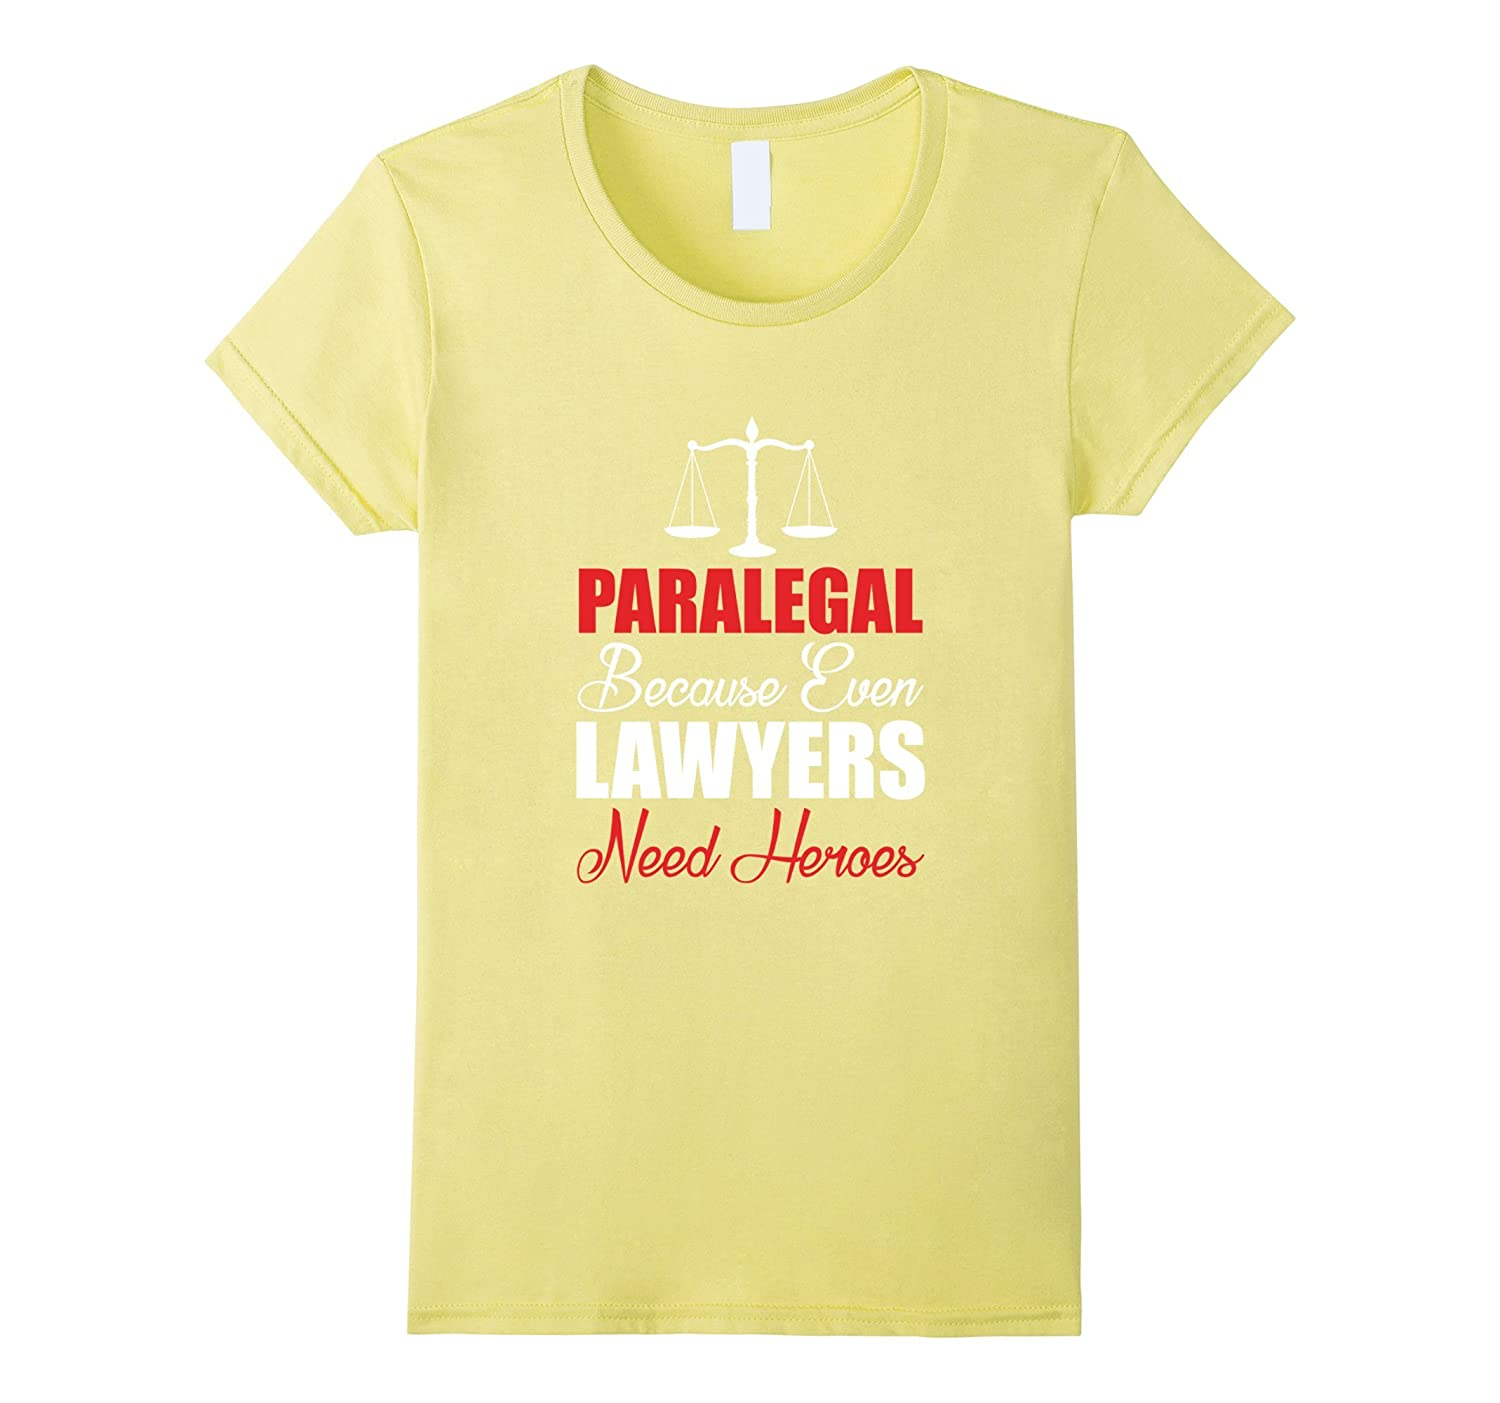 Amazon.com: Paralegal Because Even Lawyers Need Heroes T-Shirt: Clothing